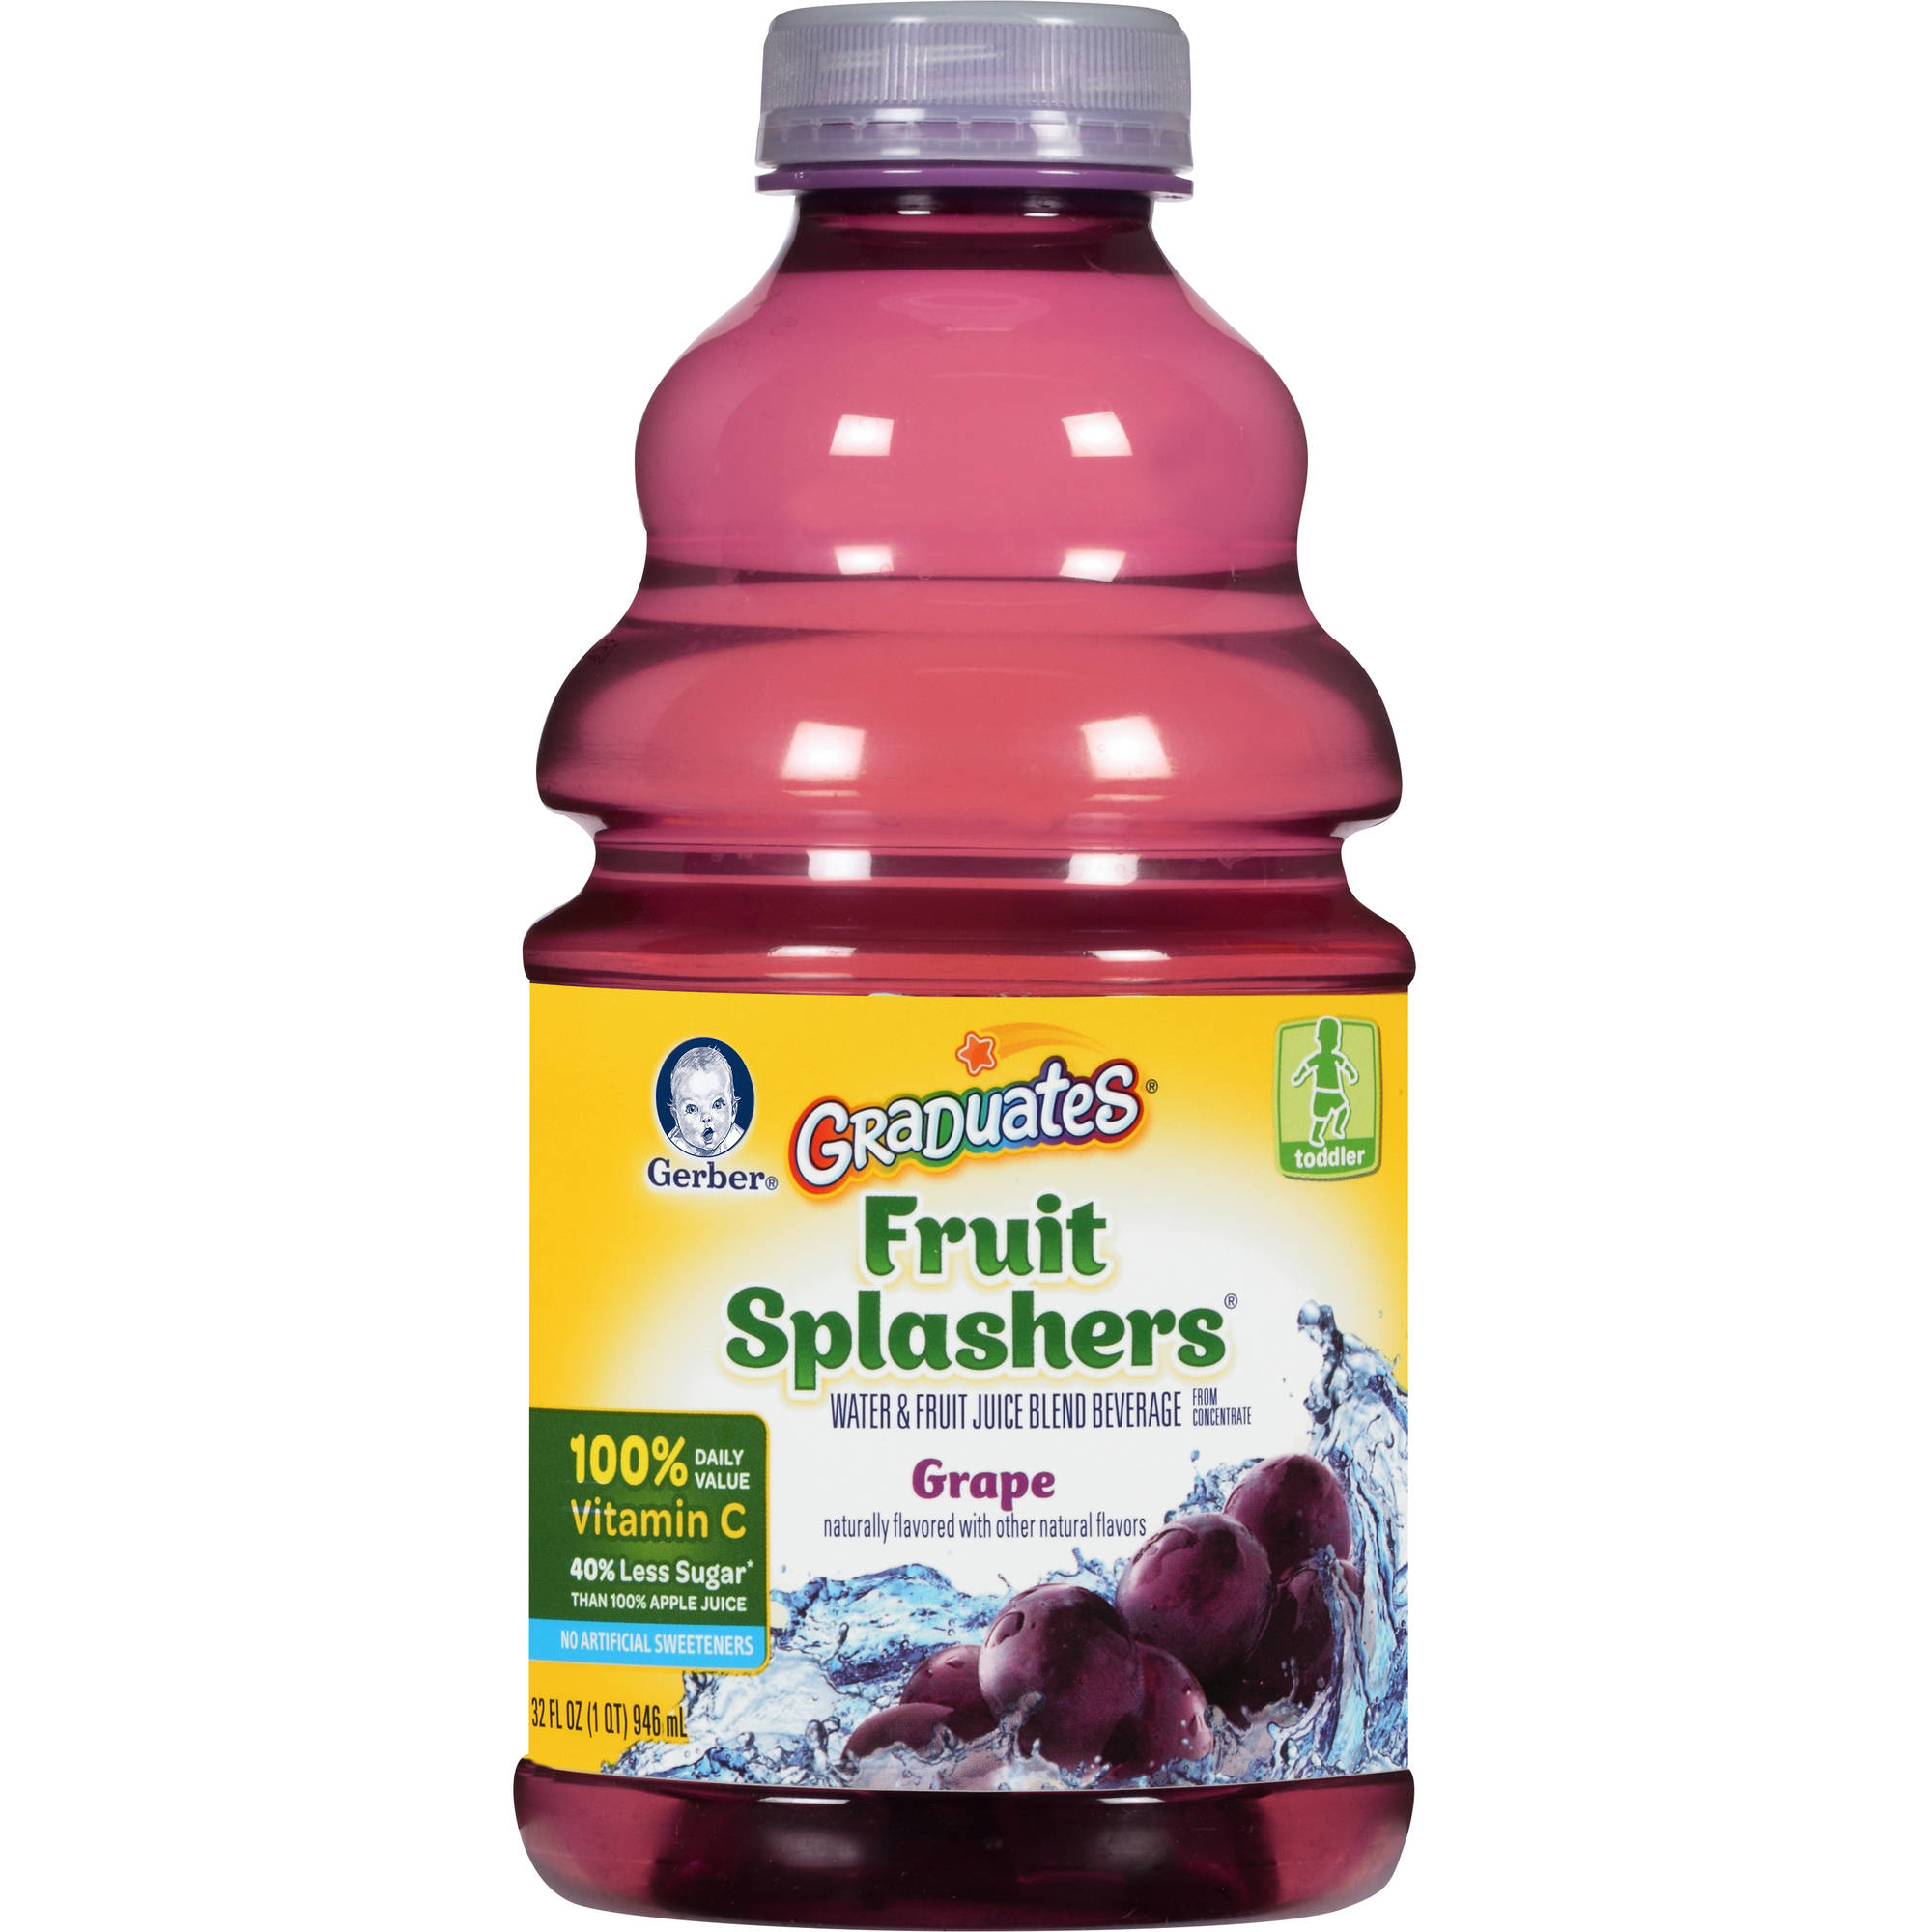 Gerber Graduates Fruit Splashers Grape Water & Fruit Juice Blend Beverage, 32 fl oz